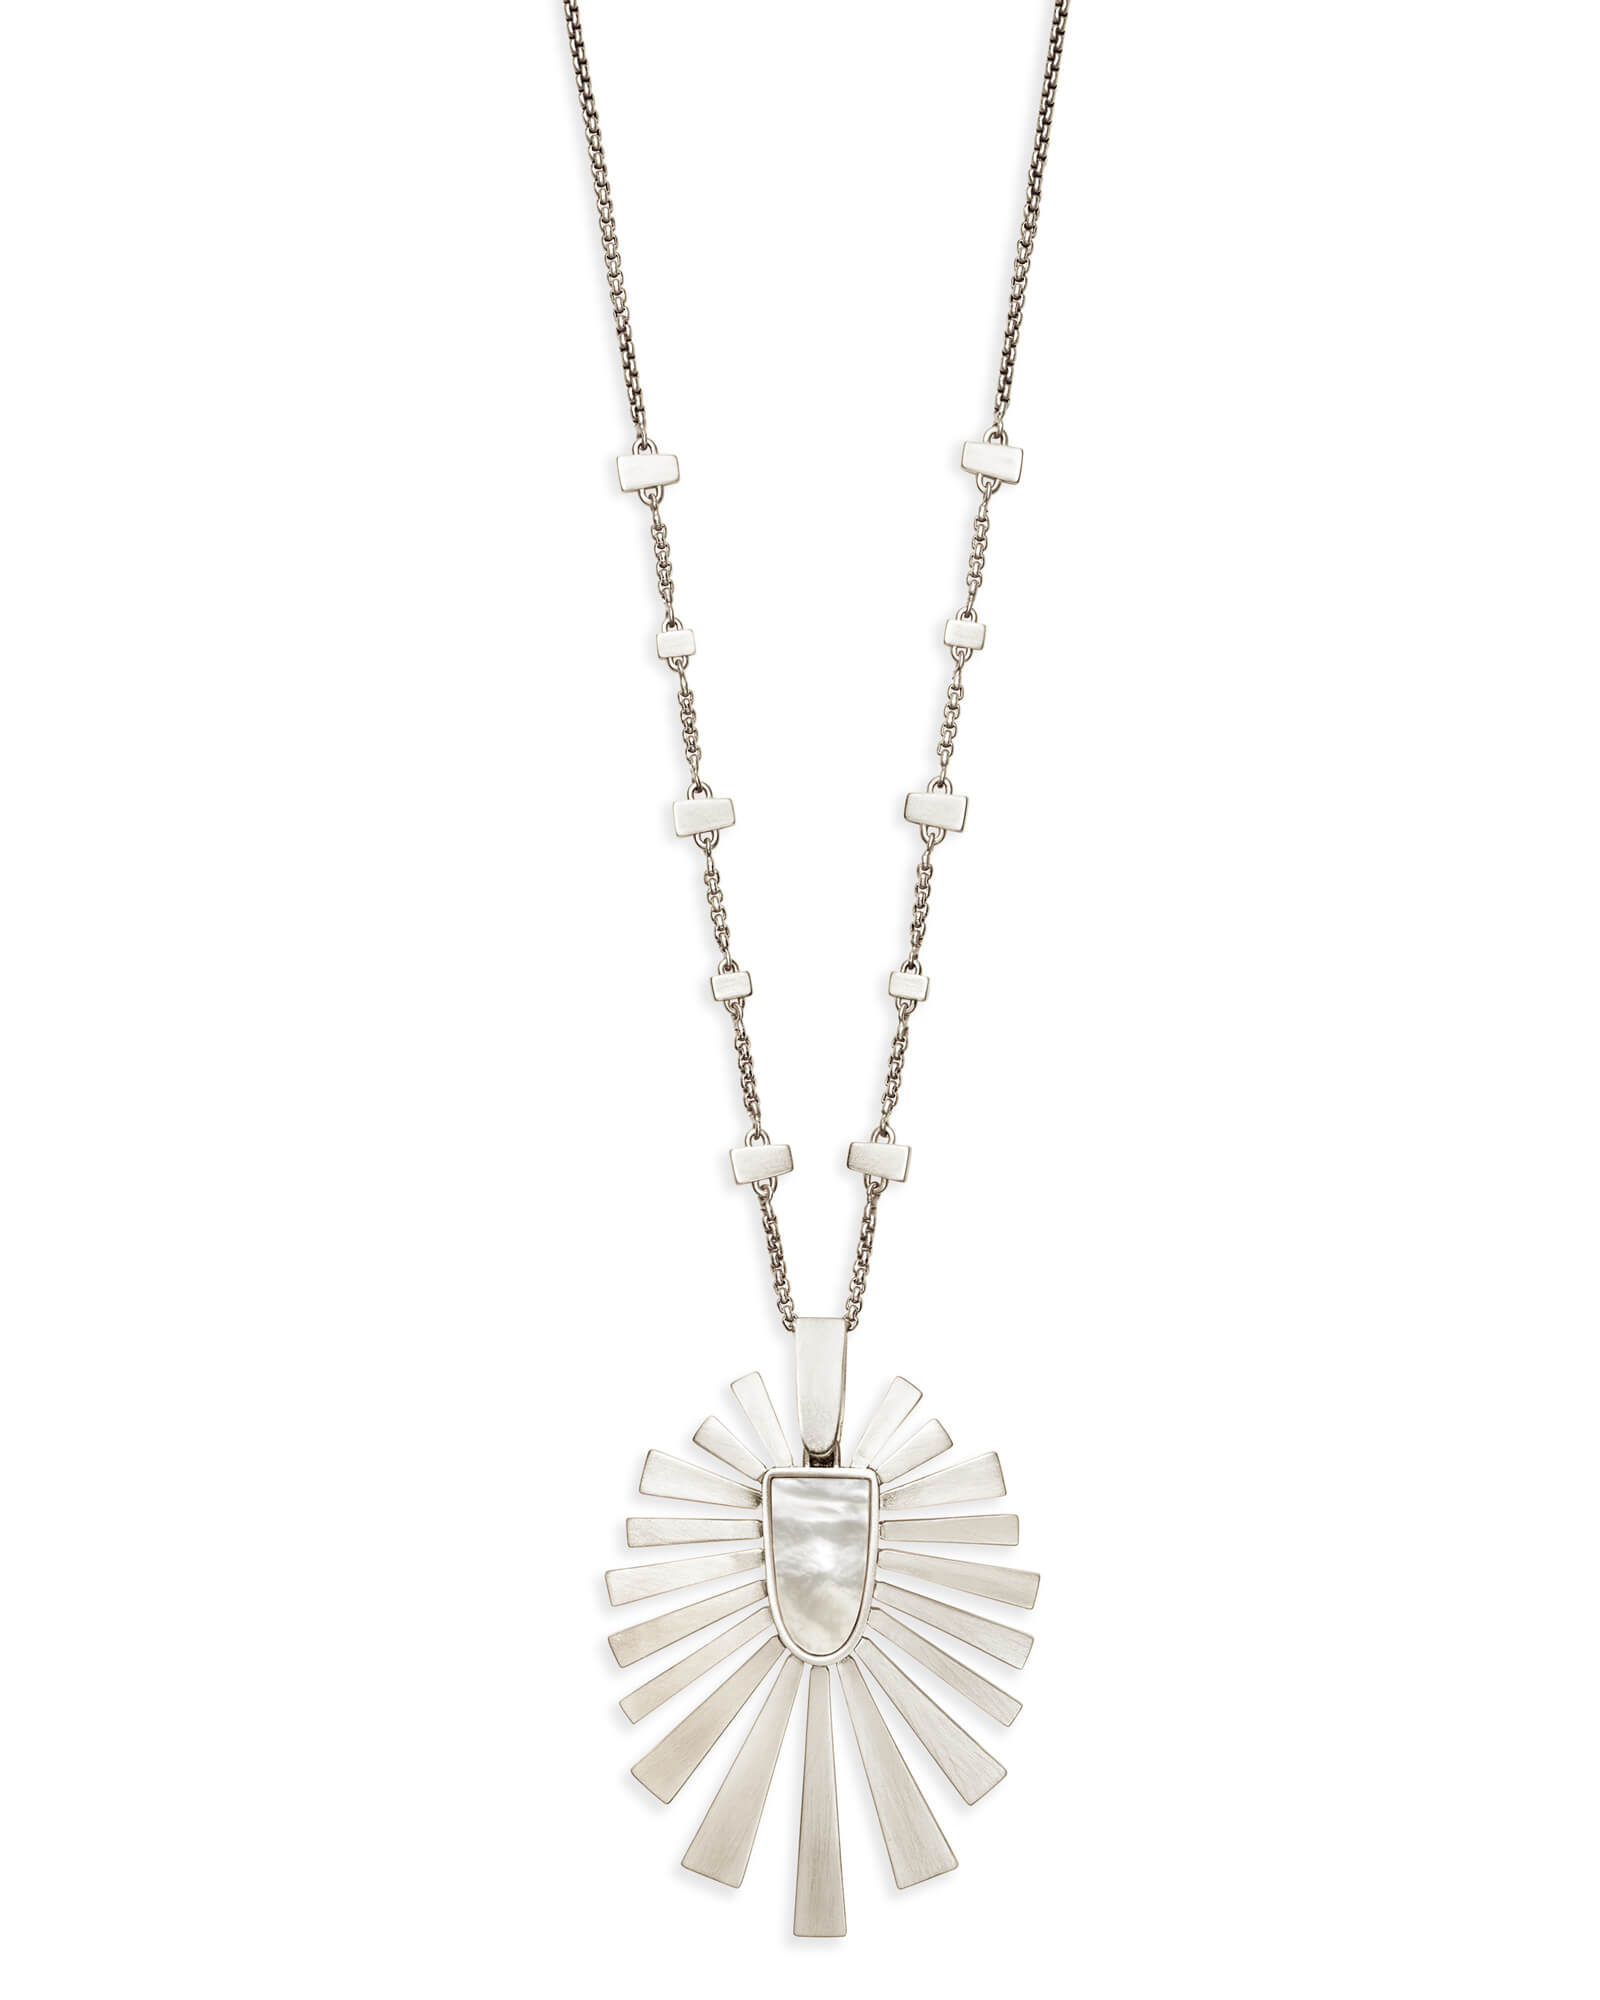 Paula Long Pendant Necklace in Silver